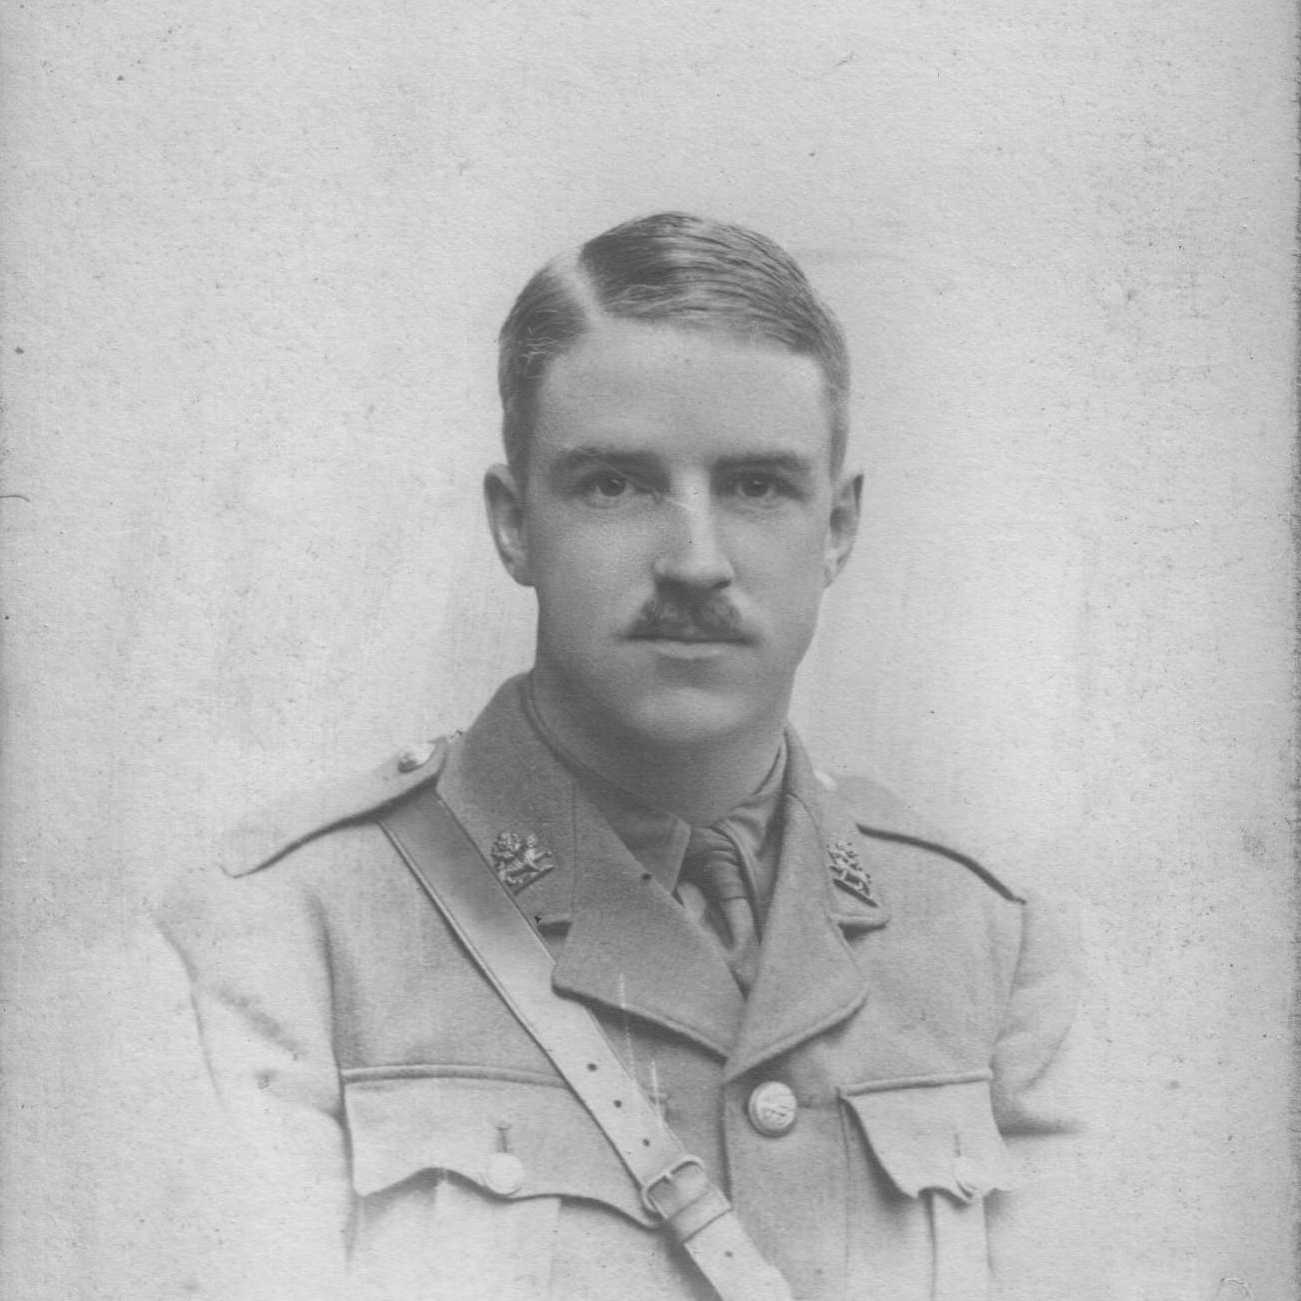 Harold Faulder, 3rd Battalion, York and Lancaster Regiment